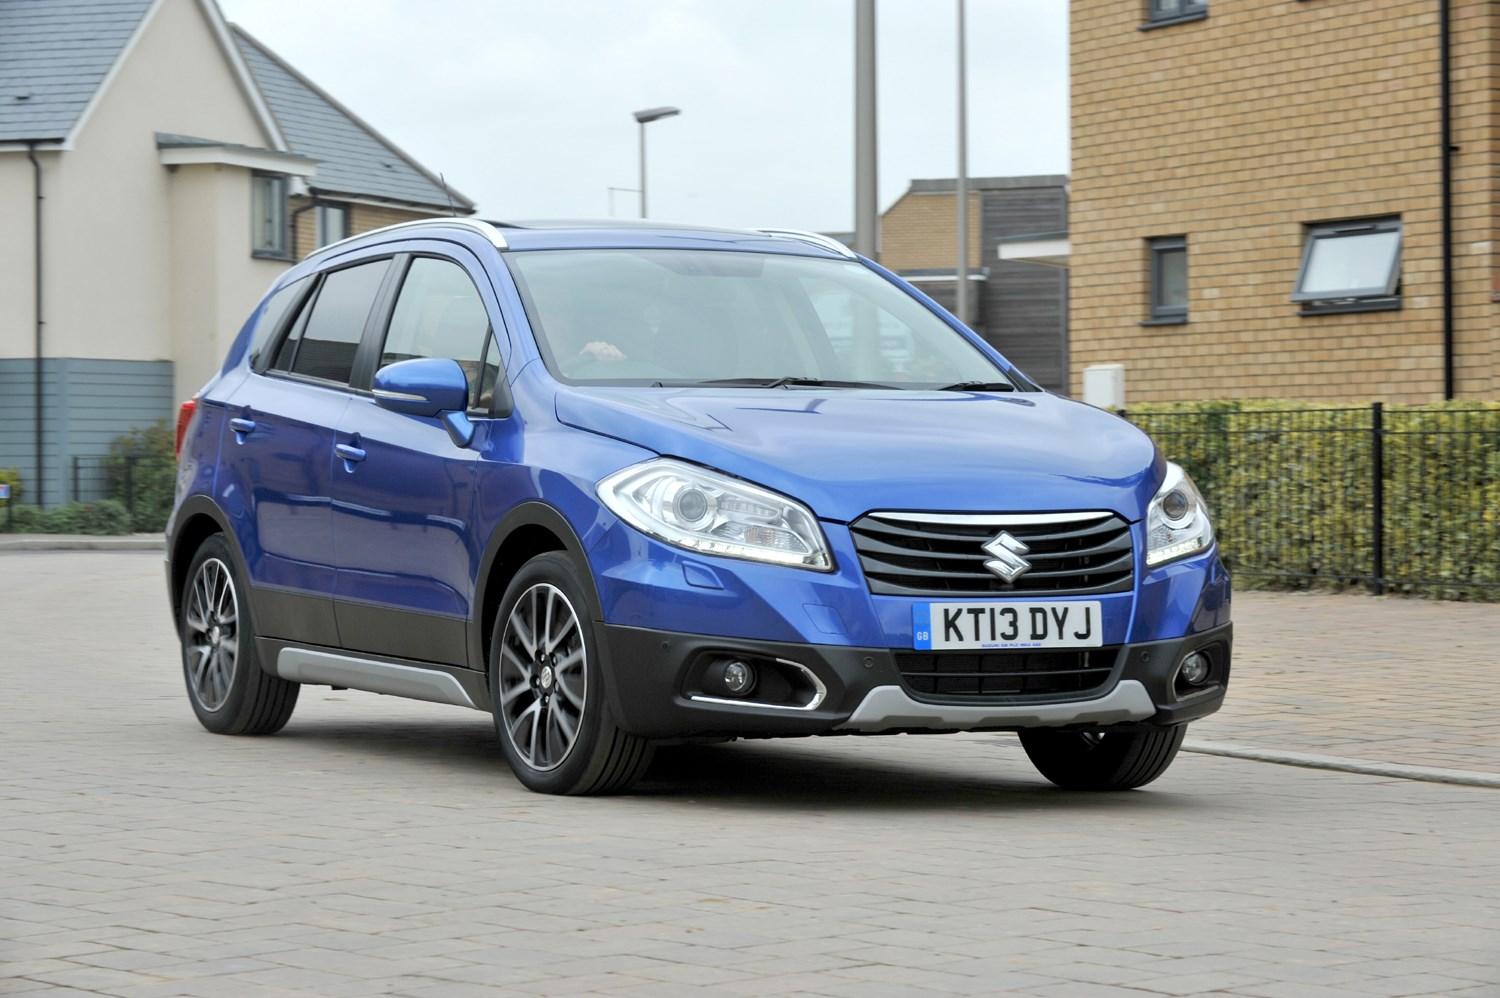 suzuki sx4 s cross review parkers. Black Bedroom Furniture Sets. Home Design Ideas